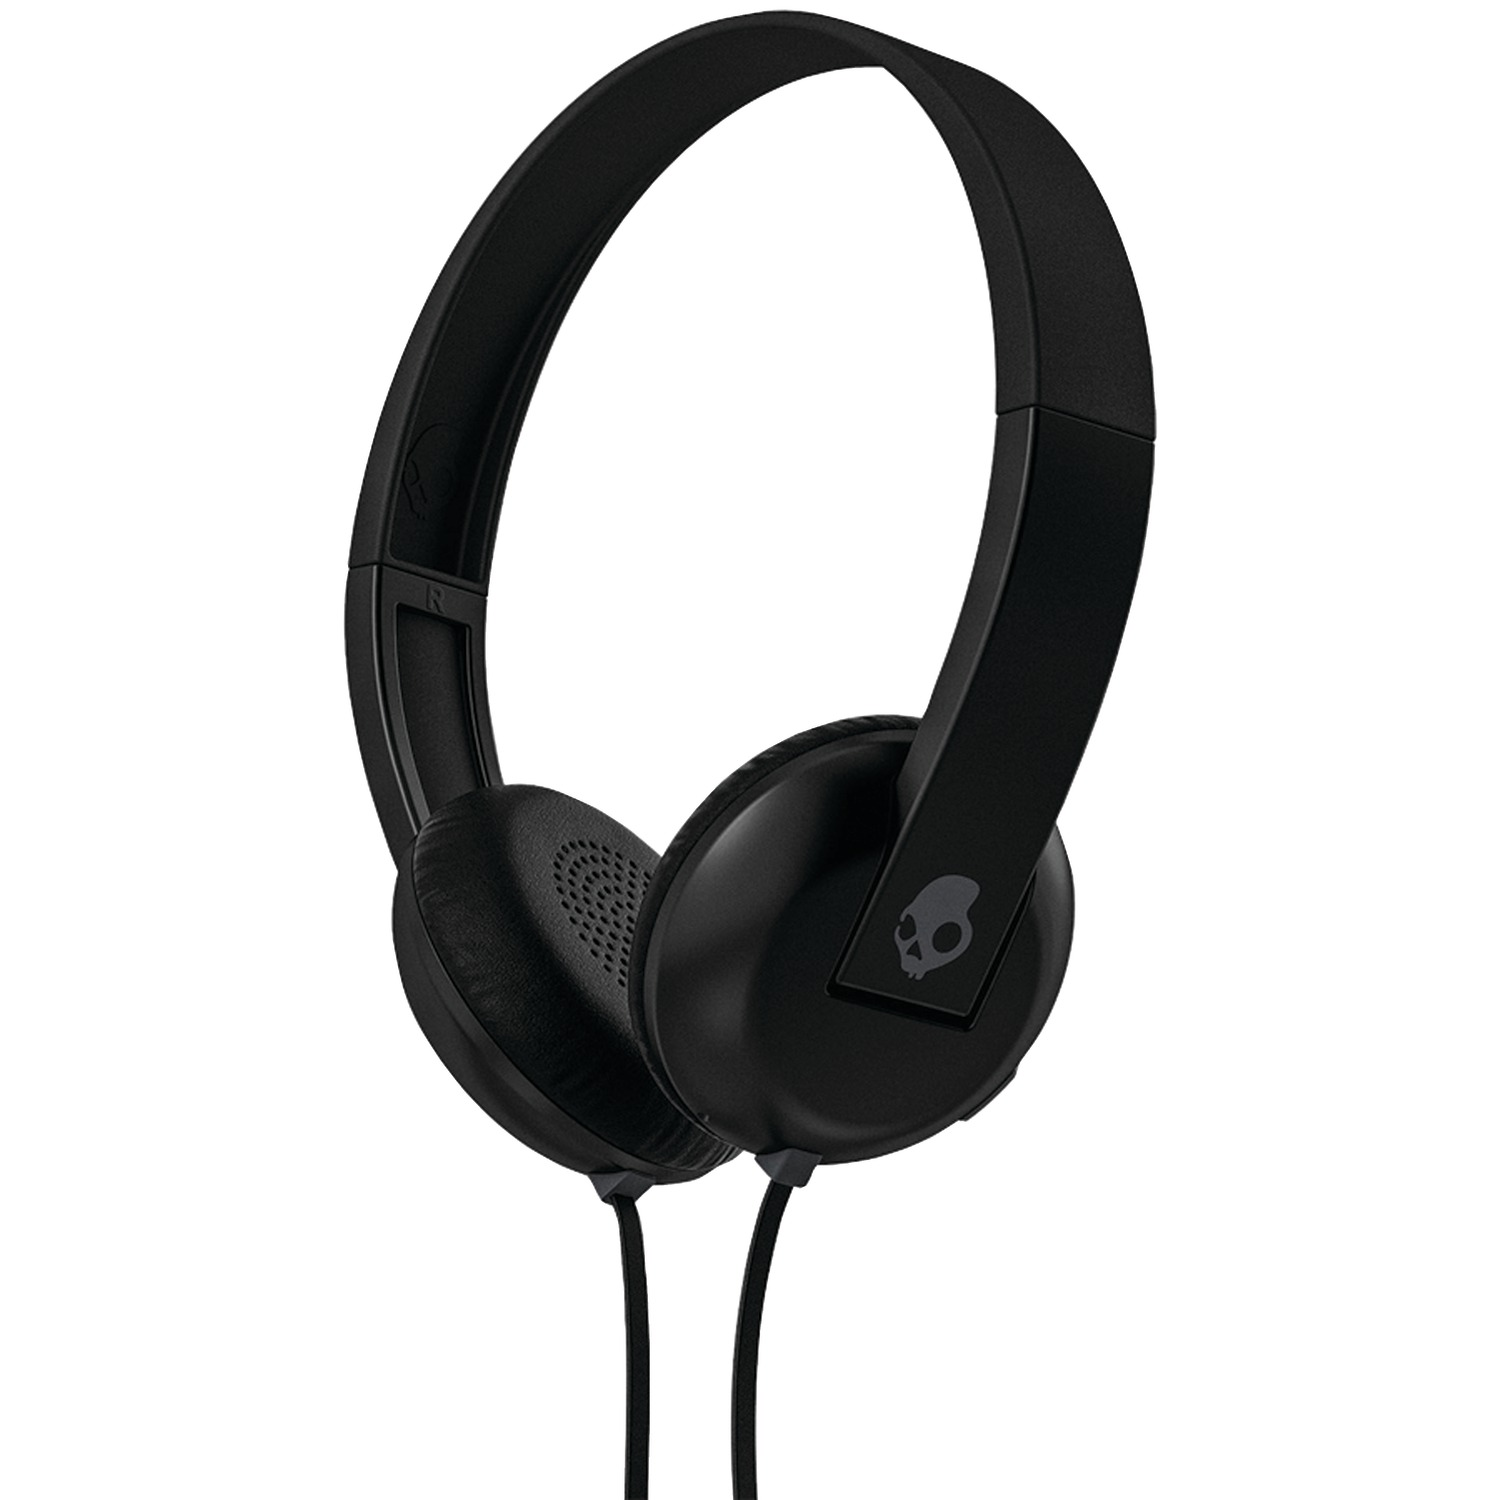 Skullcandy S5URHT-456 Uproar Over-Ear Headphones with Microphone (Black/Gray)